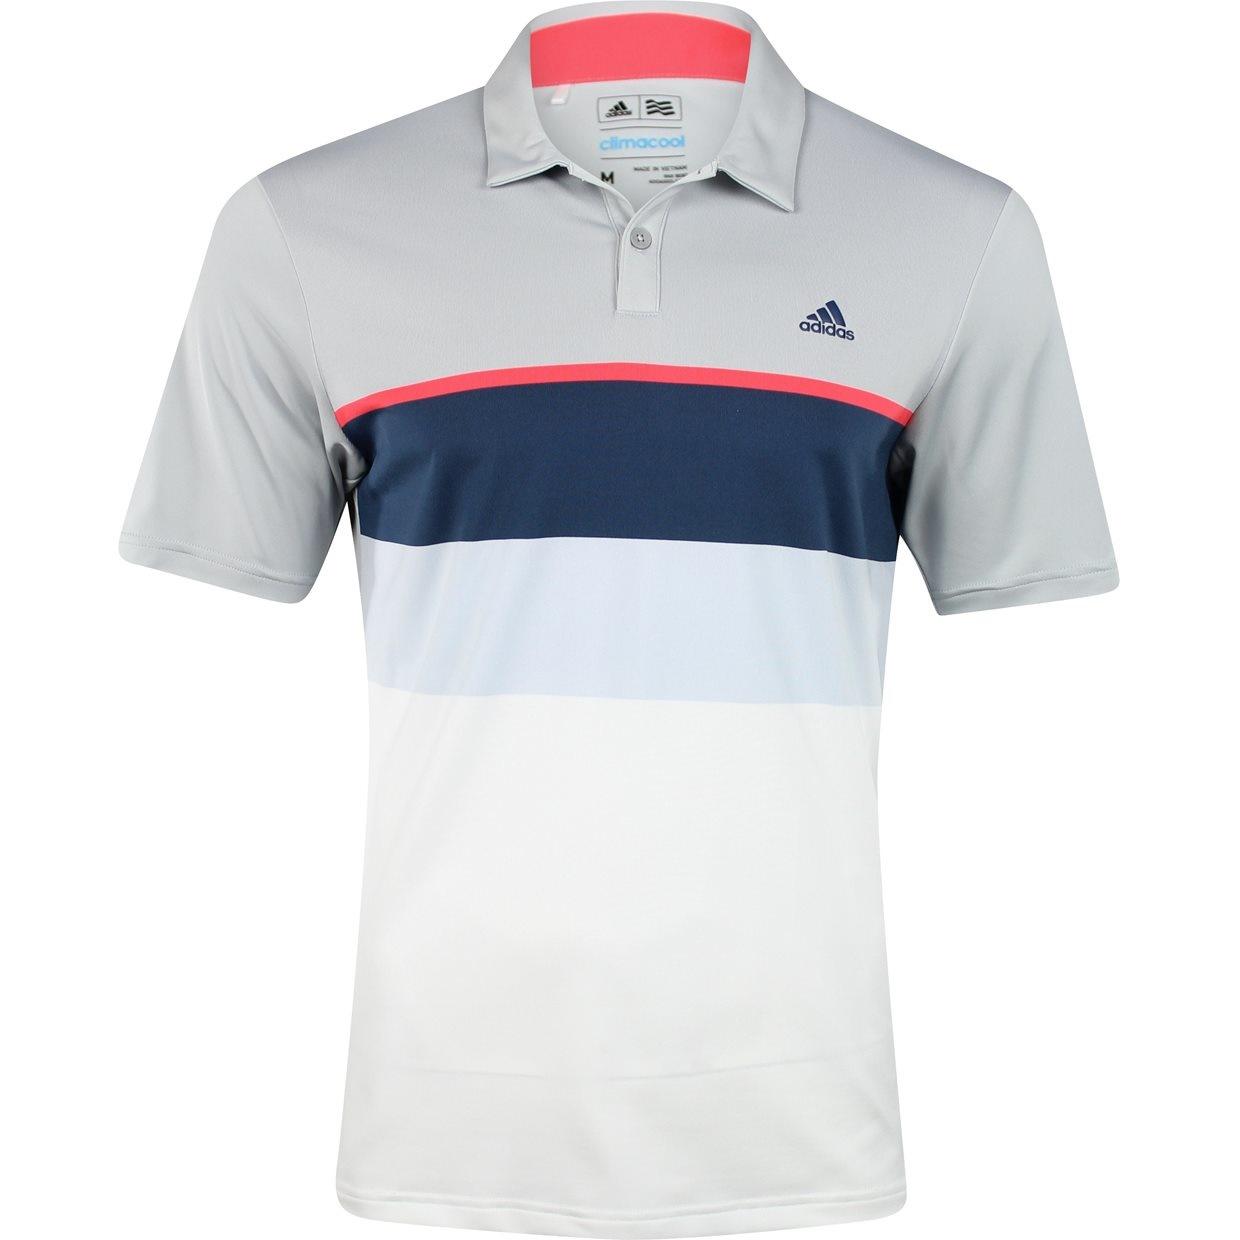 981579c64e9 adidas Golf ClimaCool Engineered Stripe Polo Shirt - Stone/Shock  Red/Mineral Blue